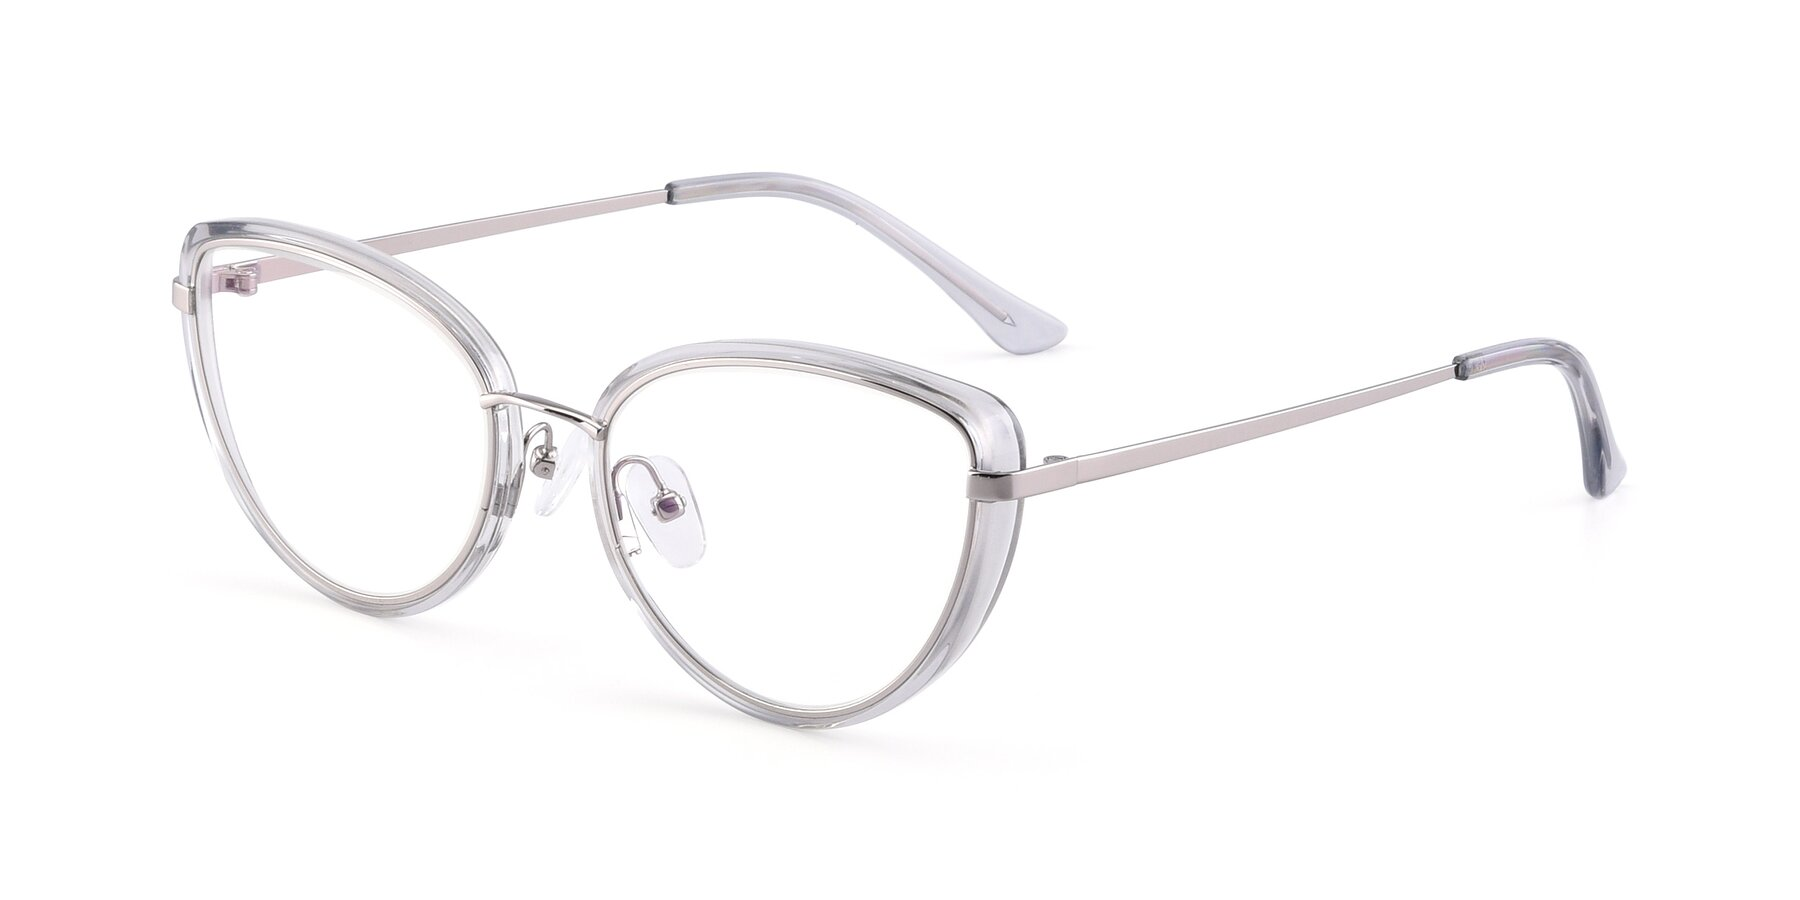 Angle of 17706 in Transparent Grey-Silver with Clear Eyeglass Lenses